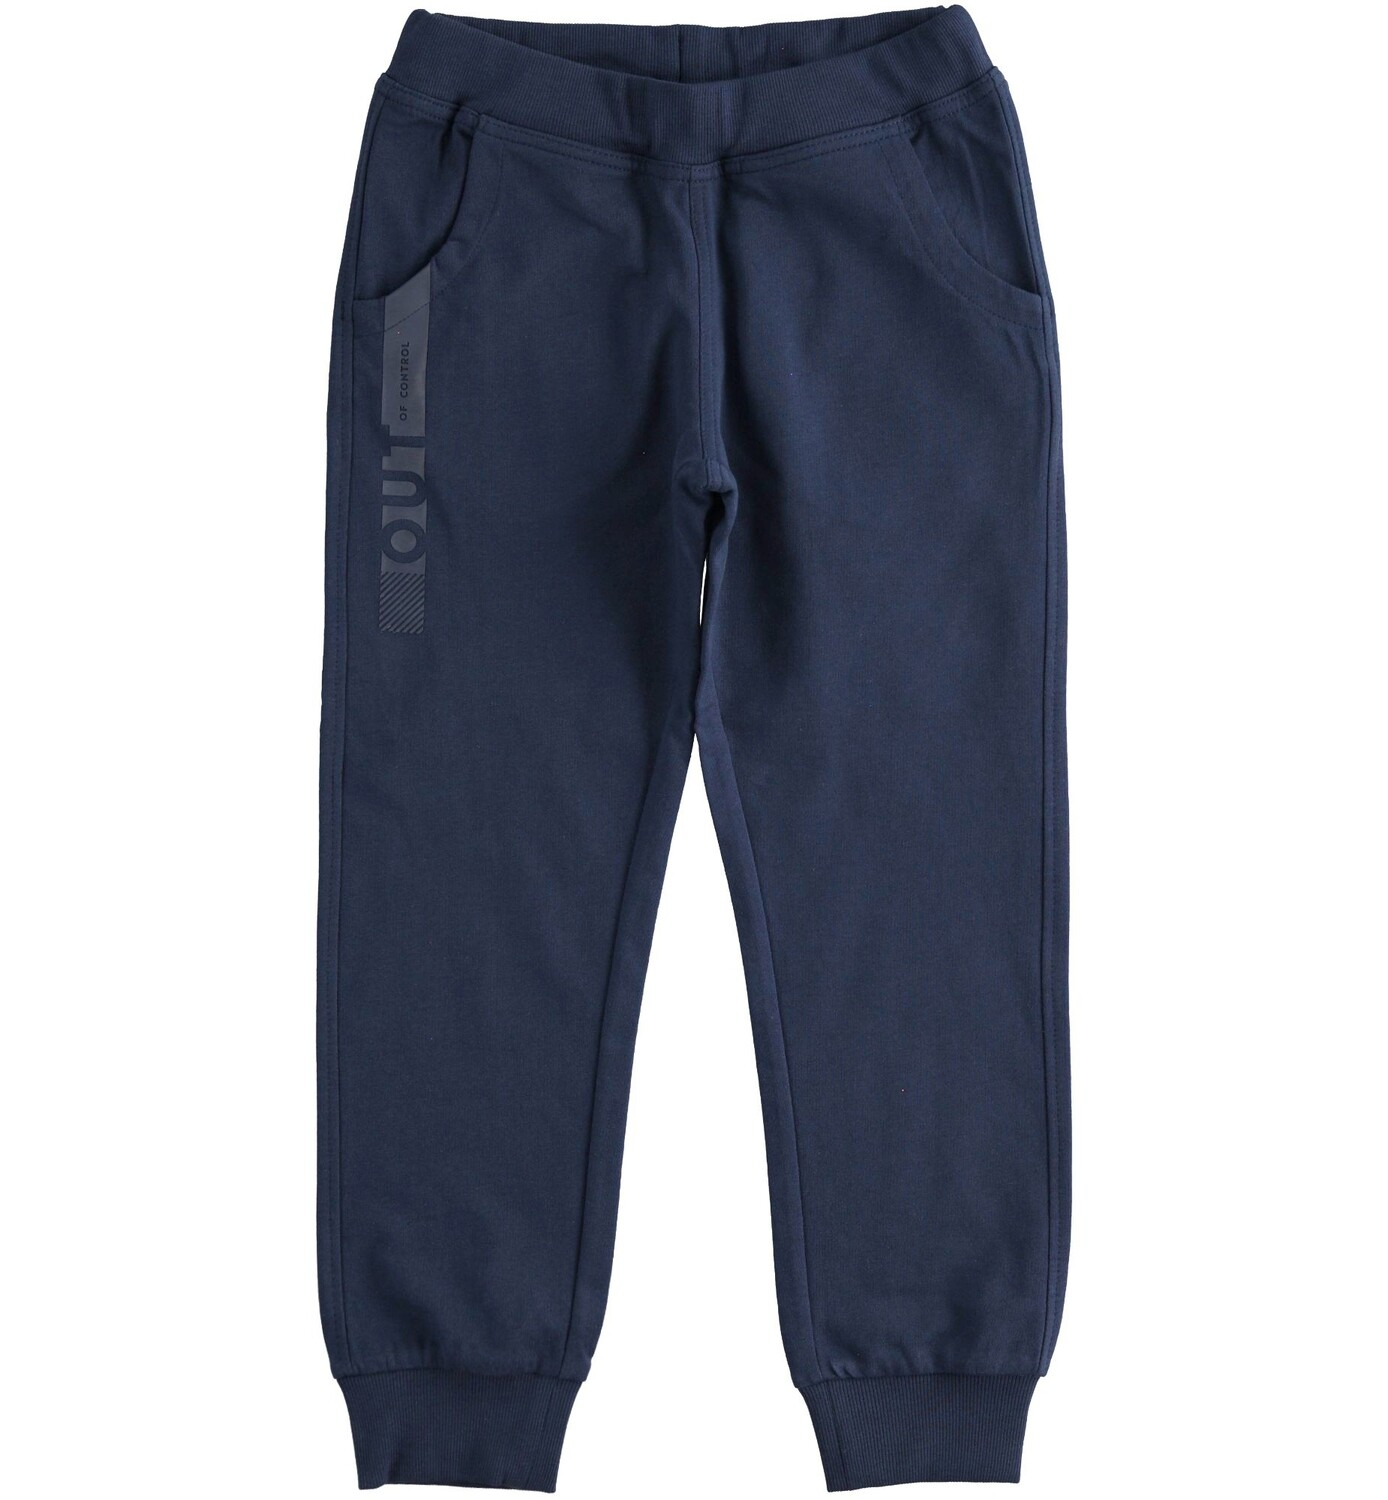 iDO Boys Navy Sporty long trousers in cotton fleece